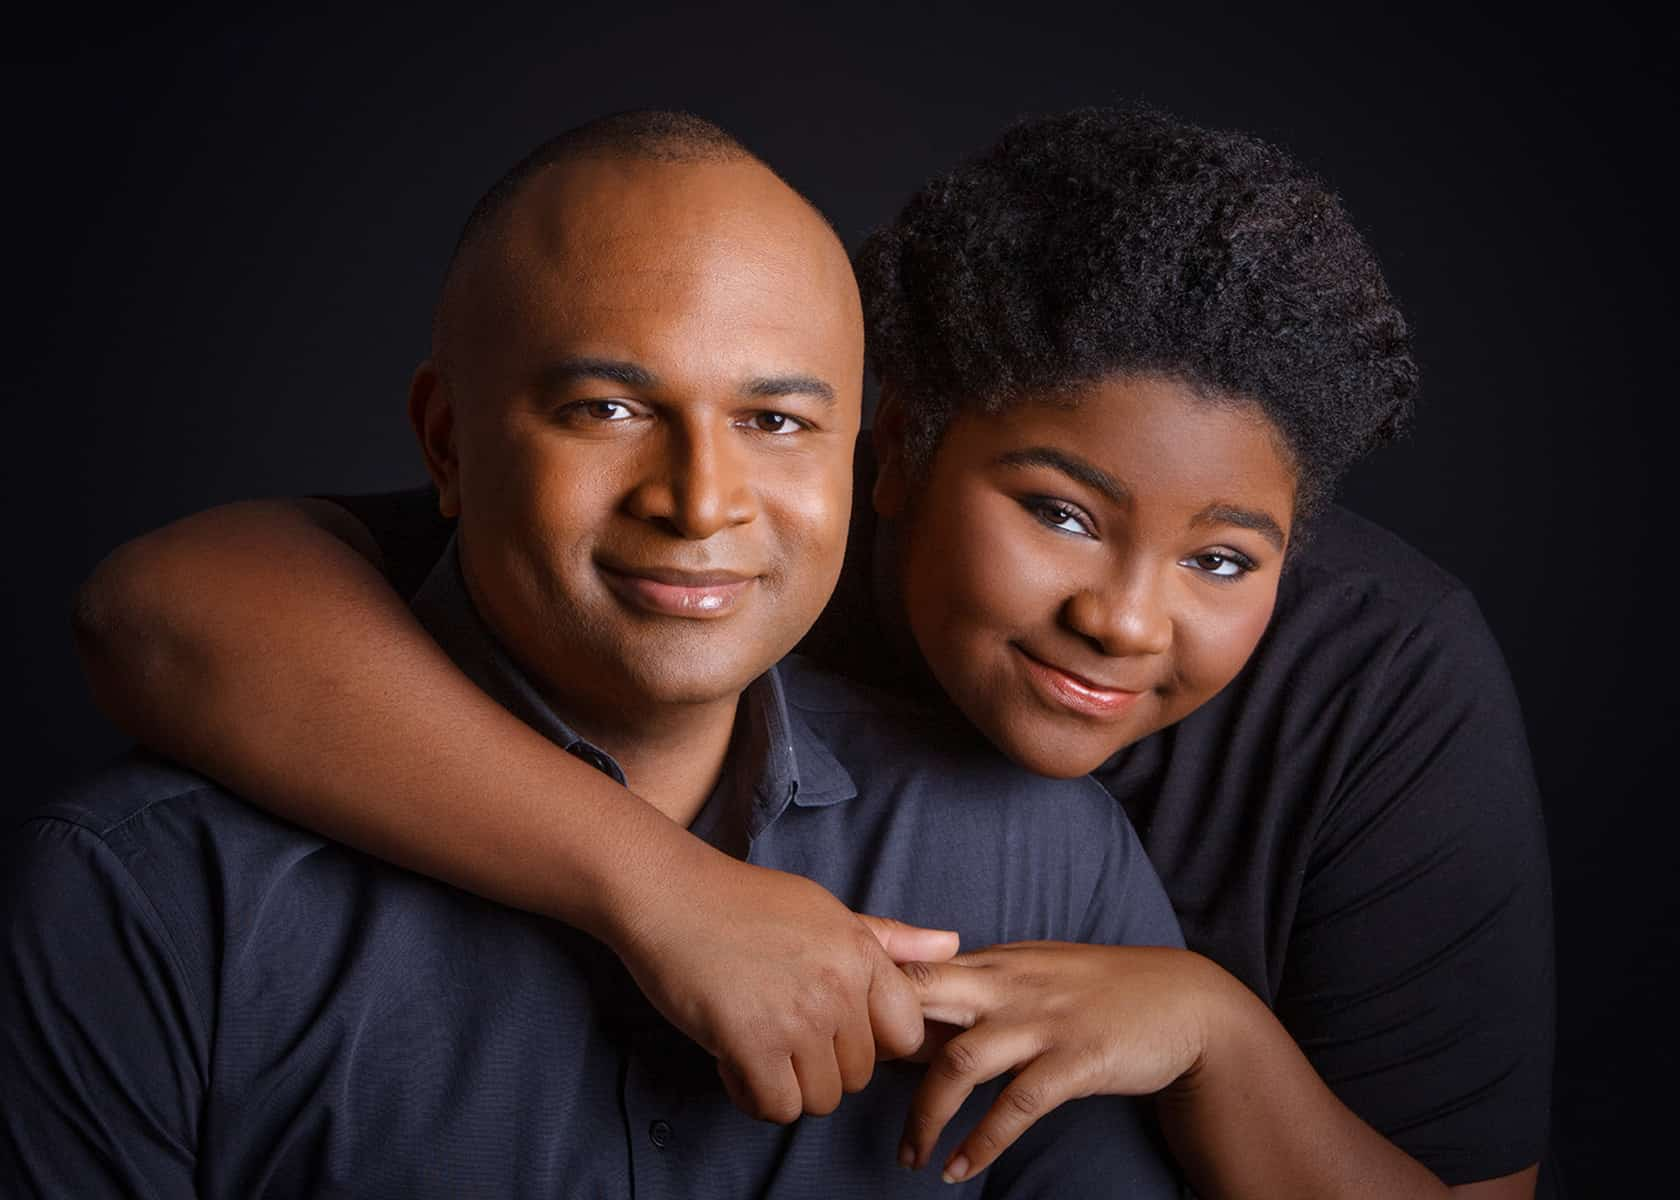 Father and daughter studio photoshoot